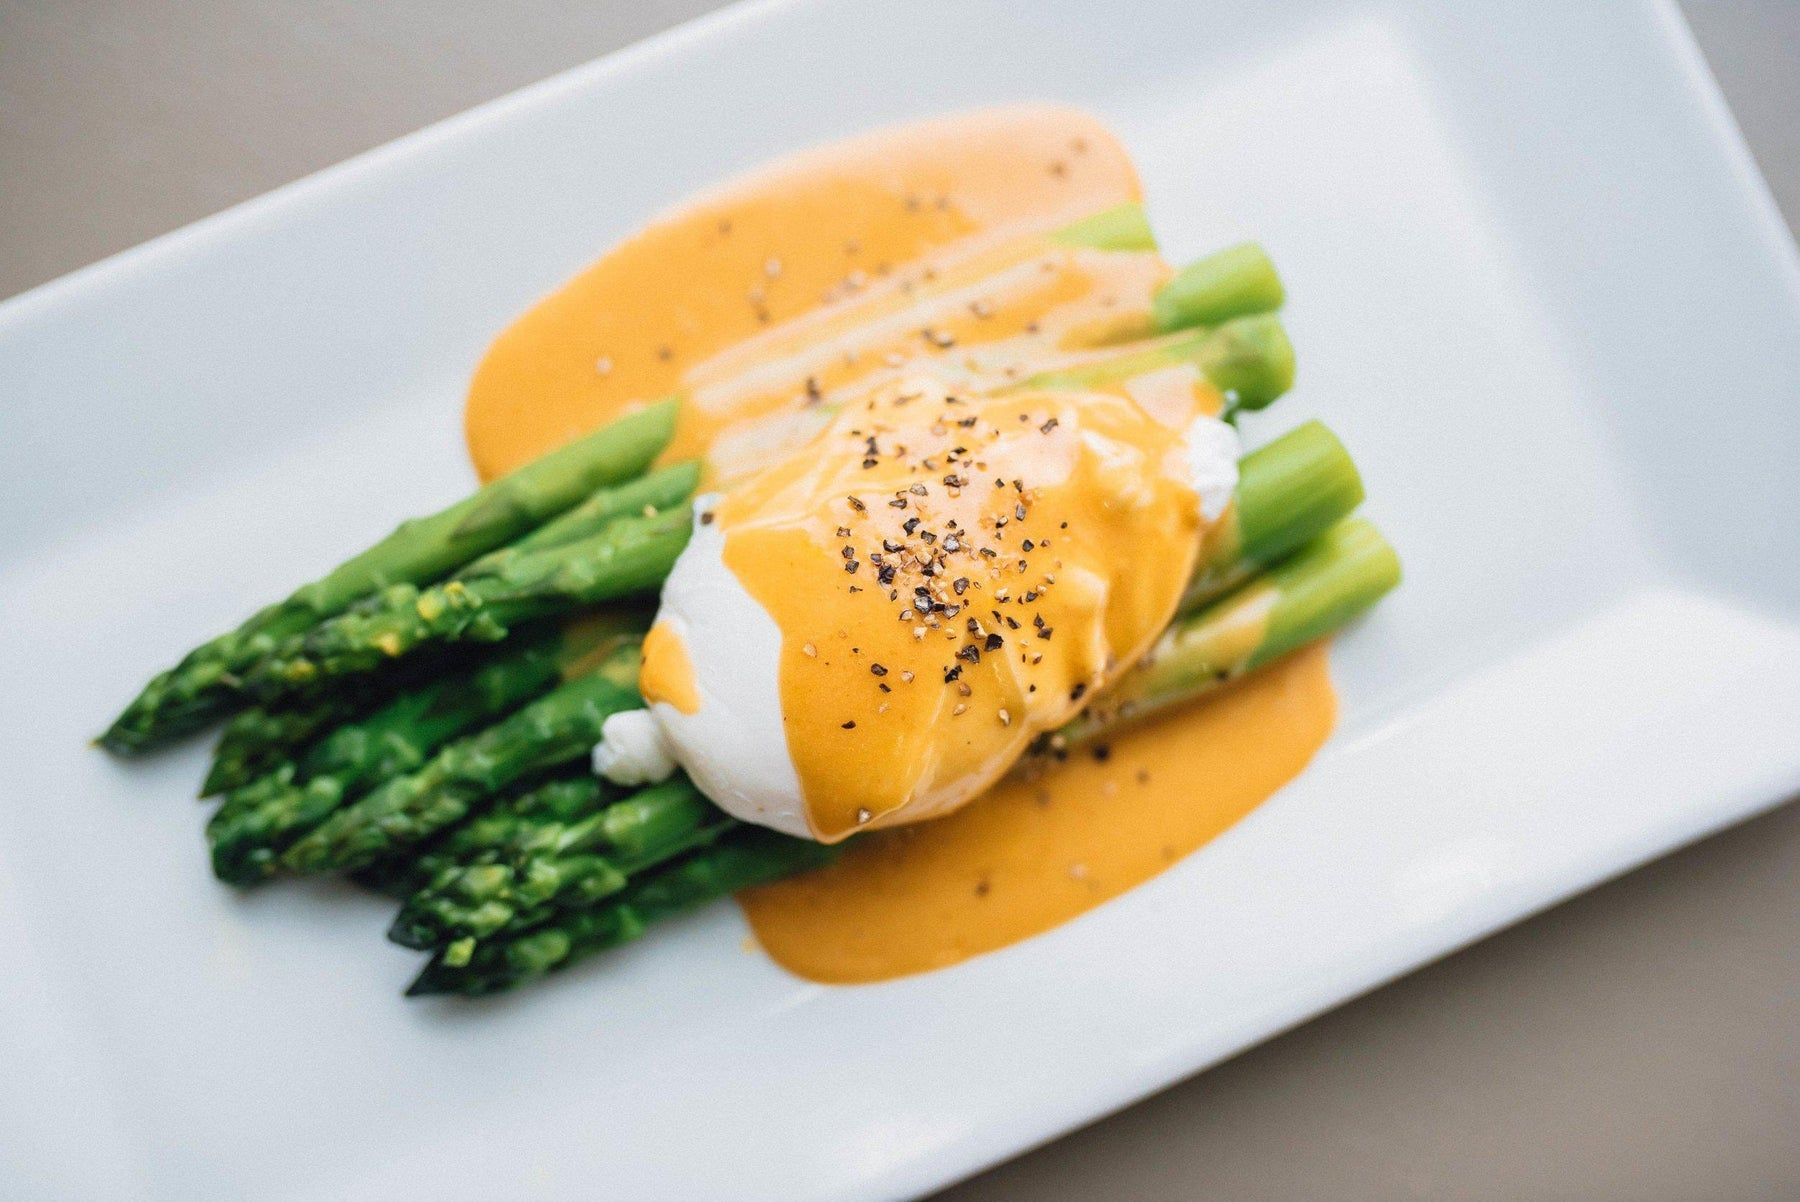 MOLASSES MUSTARD HOLLANDAISE